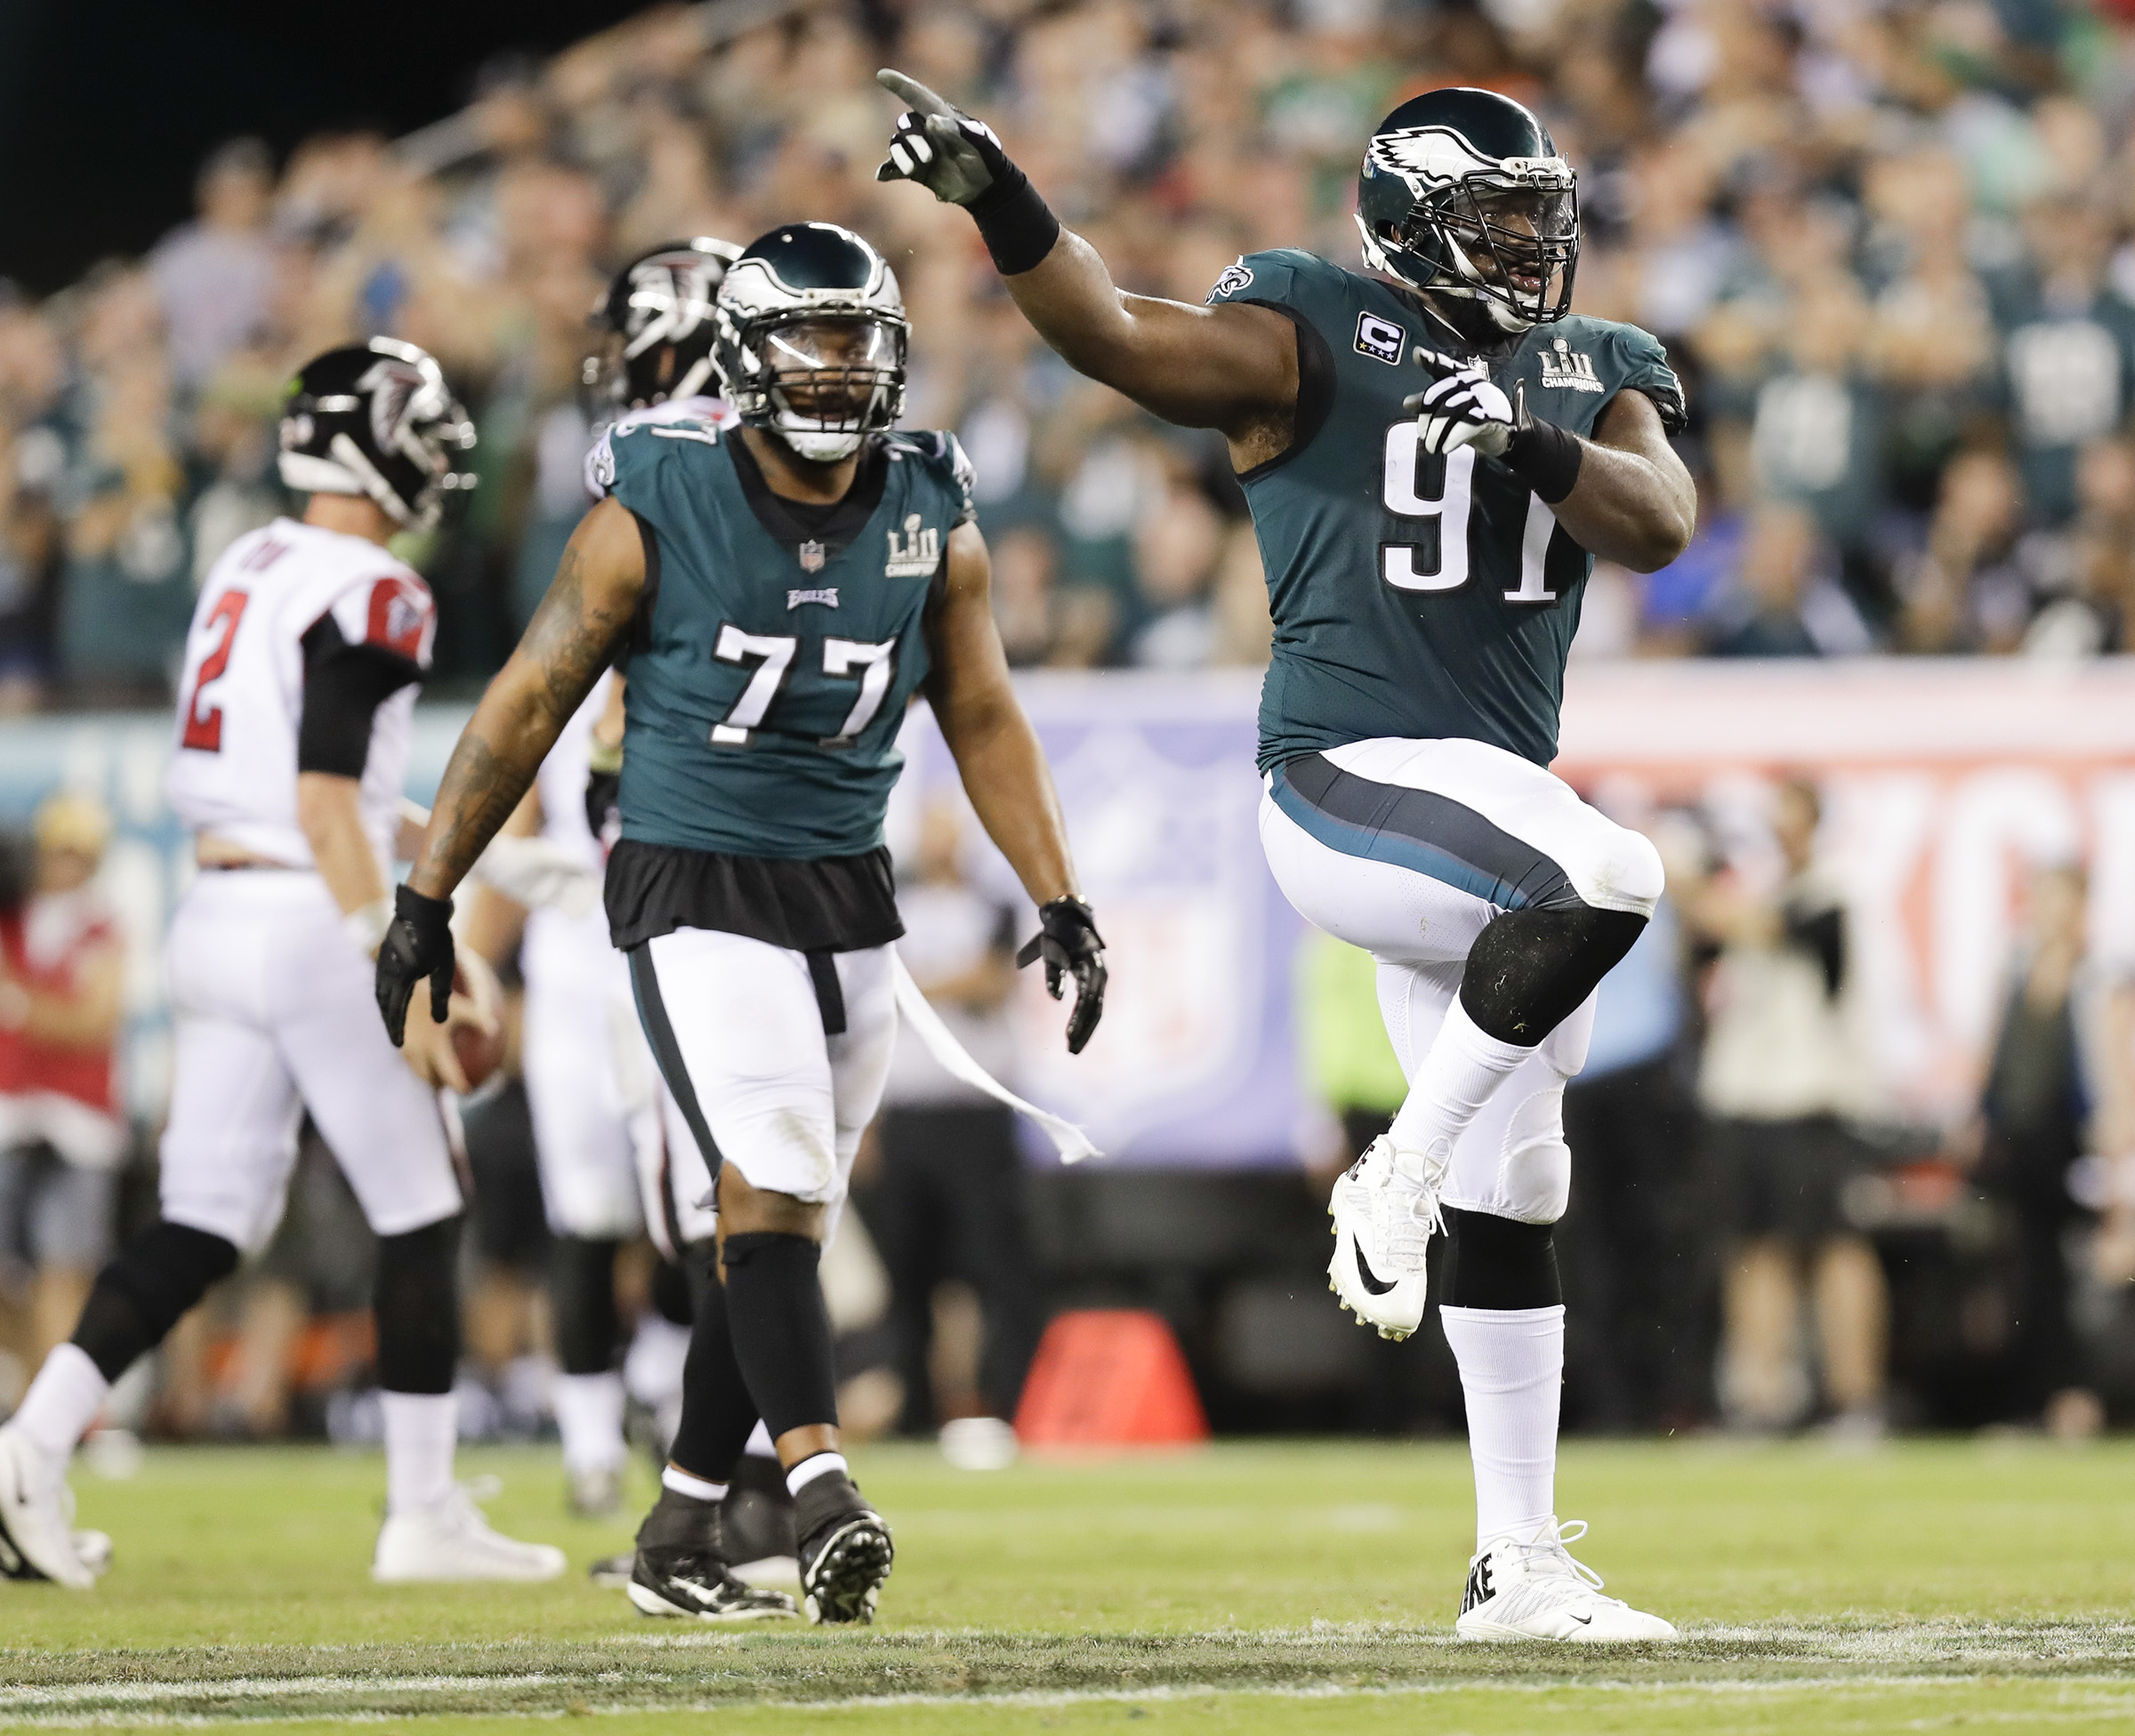 Eagles defensive end Fletcher Cox celebrates after sacking Atlanta Falcons quarterback Matt Ryan as defensive end Michael Bennett watches Cox on Thursday, September 6, 2018. A penalty on the play was called on the Eagles.